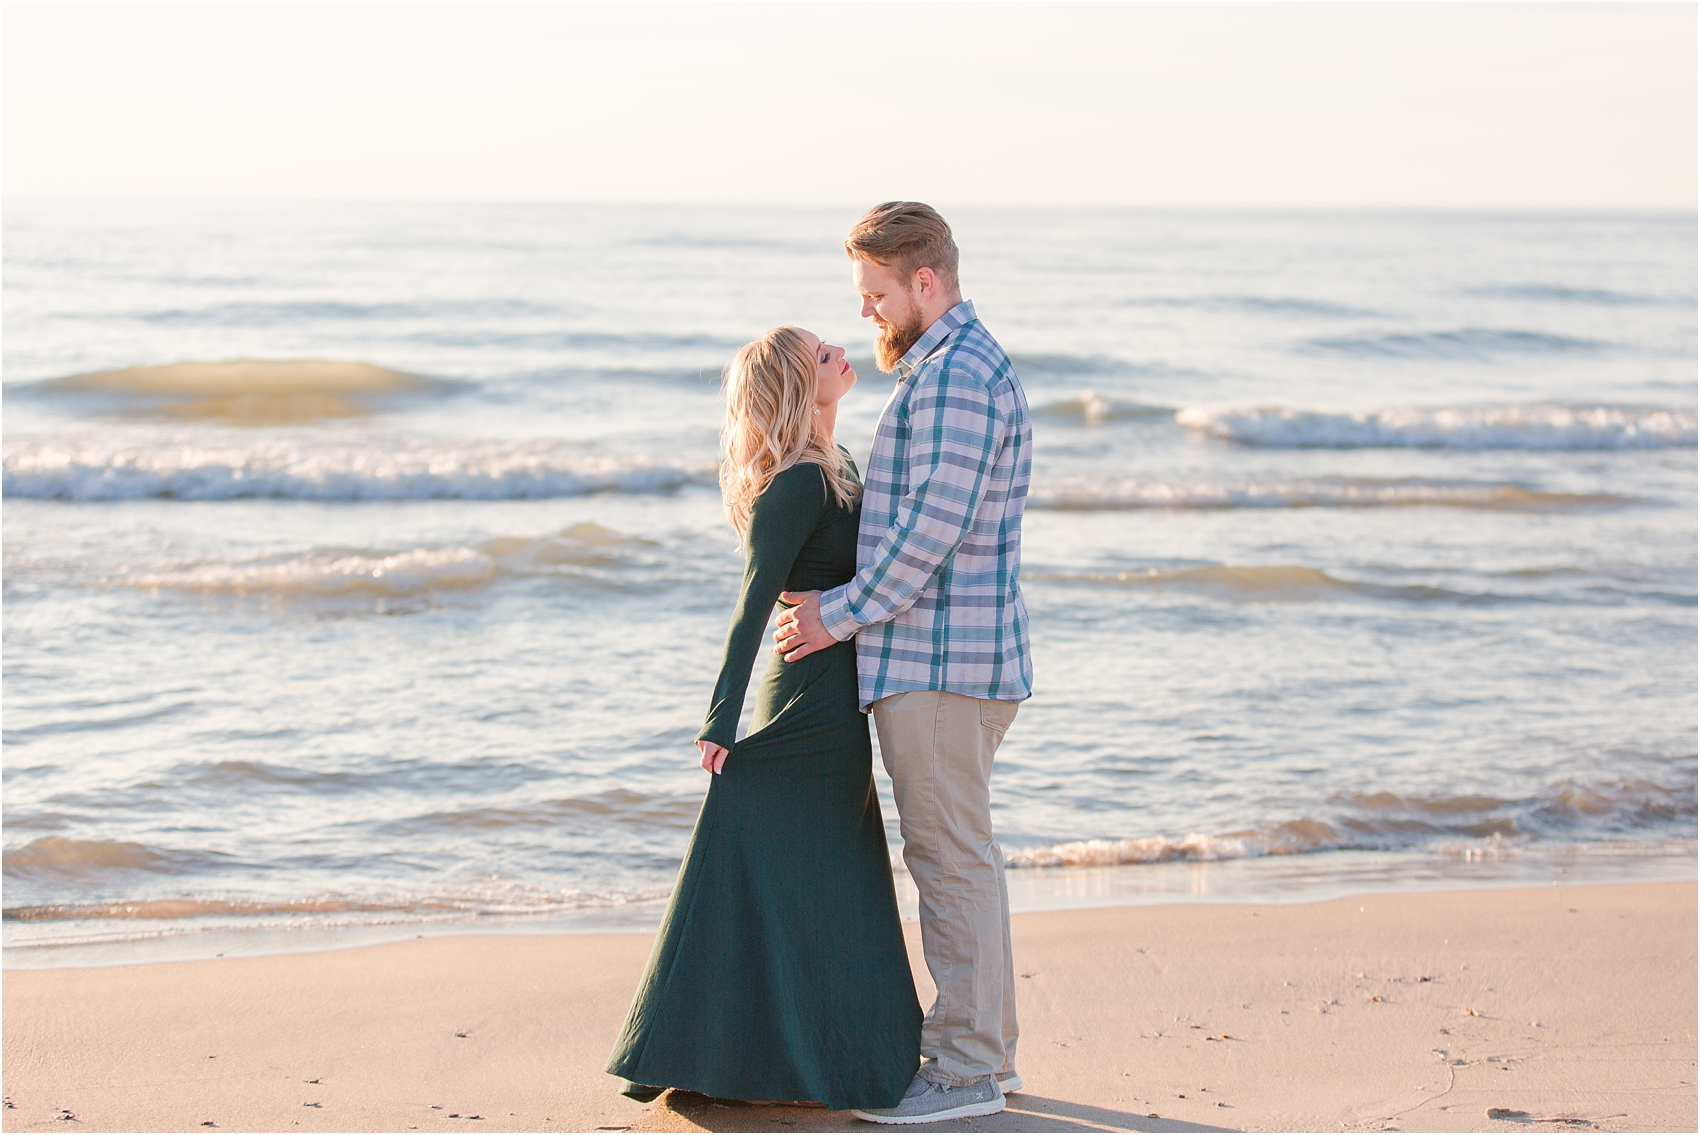 emotional-candid-romantic-engagement-photos-in-detroit-chicago-northern-michigan-by-courtney-carolyn-photography_0049.jpg